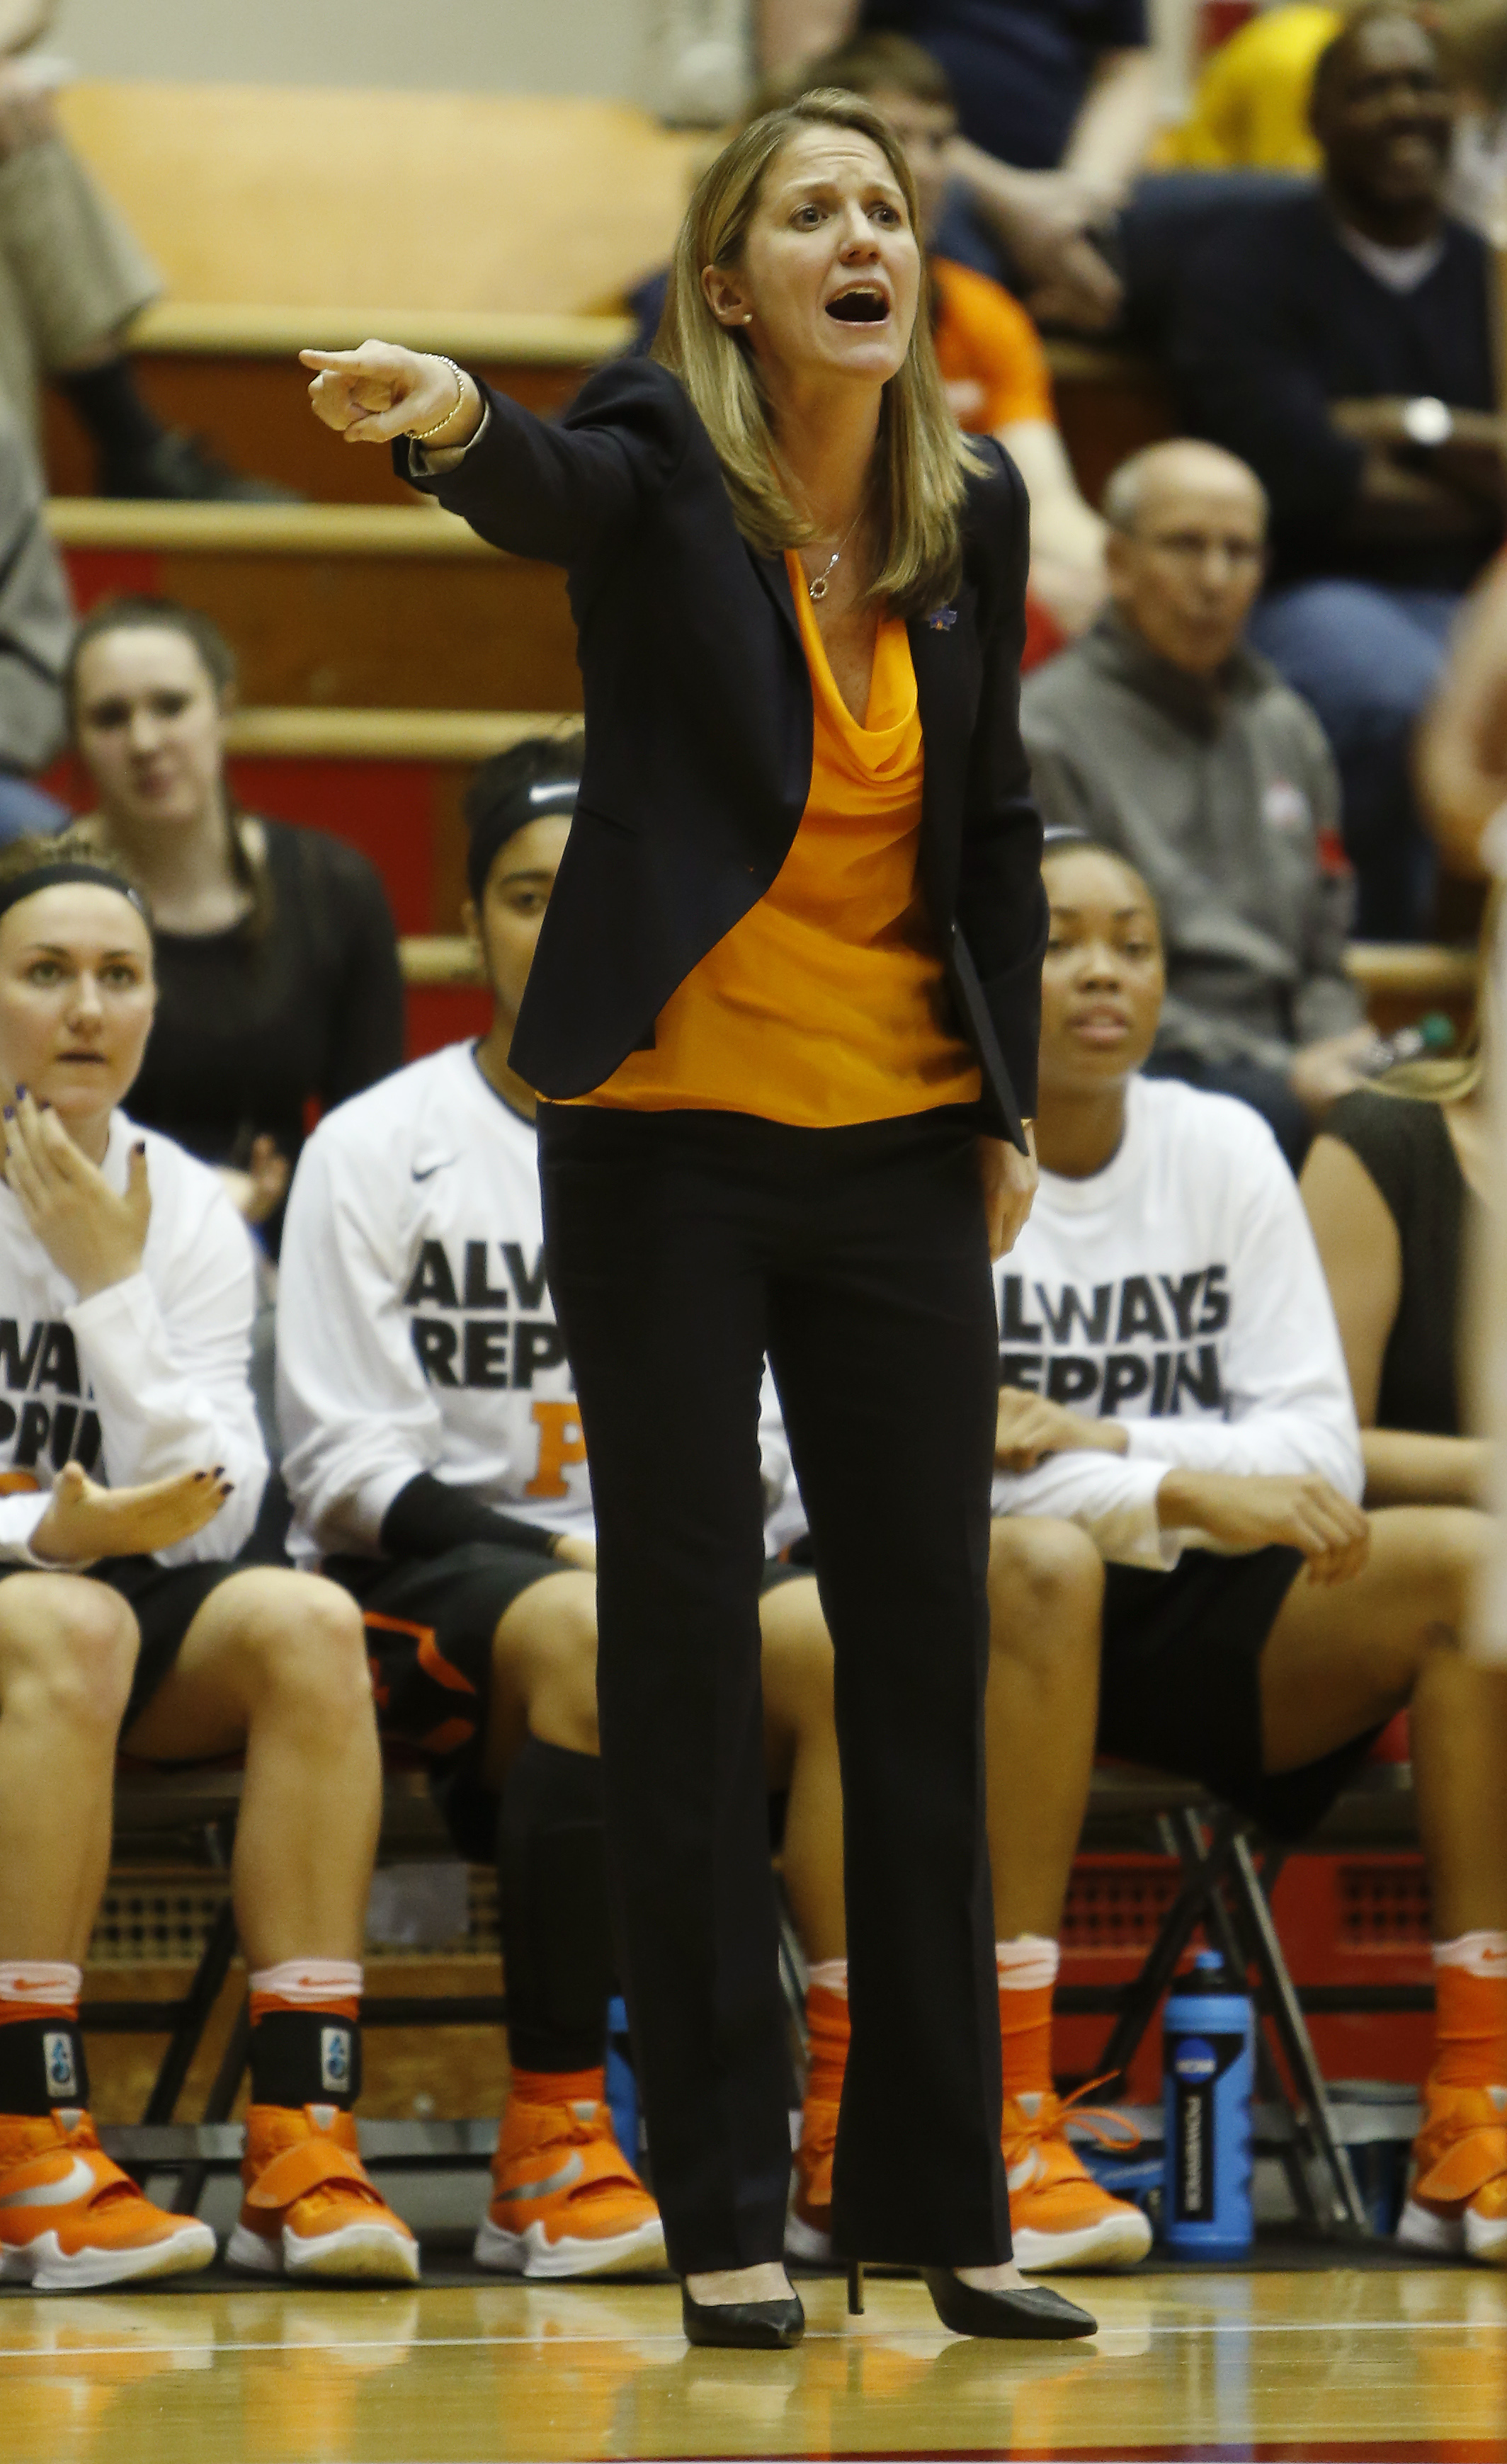 Princeton coach Courtney Banghart shouts to her team against West Virginia during a first-round women's college basketball game in the NCAA Tournament Friday, March 18, 2016, in Columbus, Ohio. West Virginia beat Princeton 74-65. (AP Photo/Jay LaPrete)